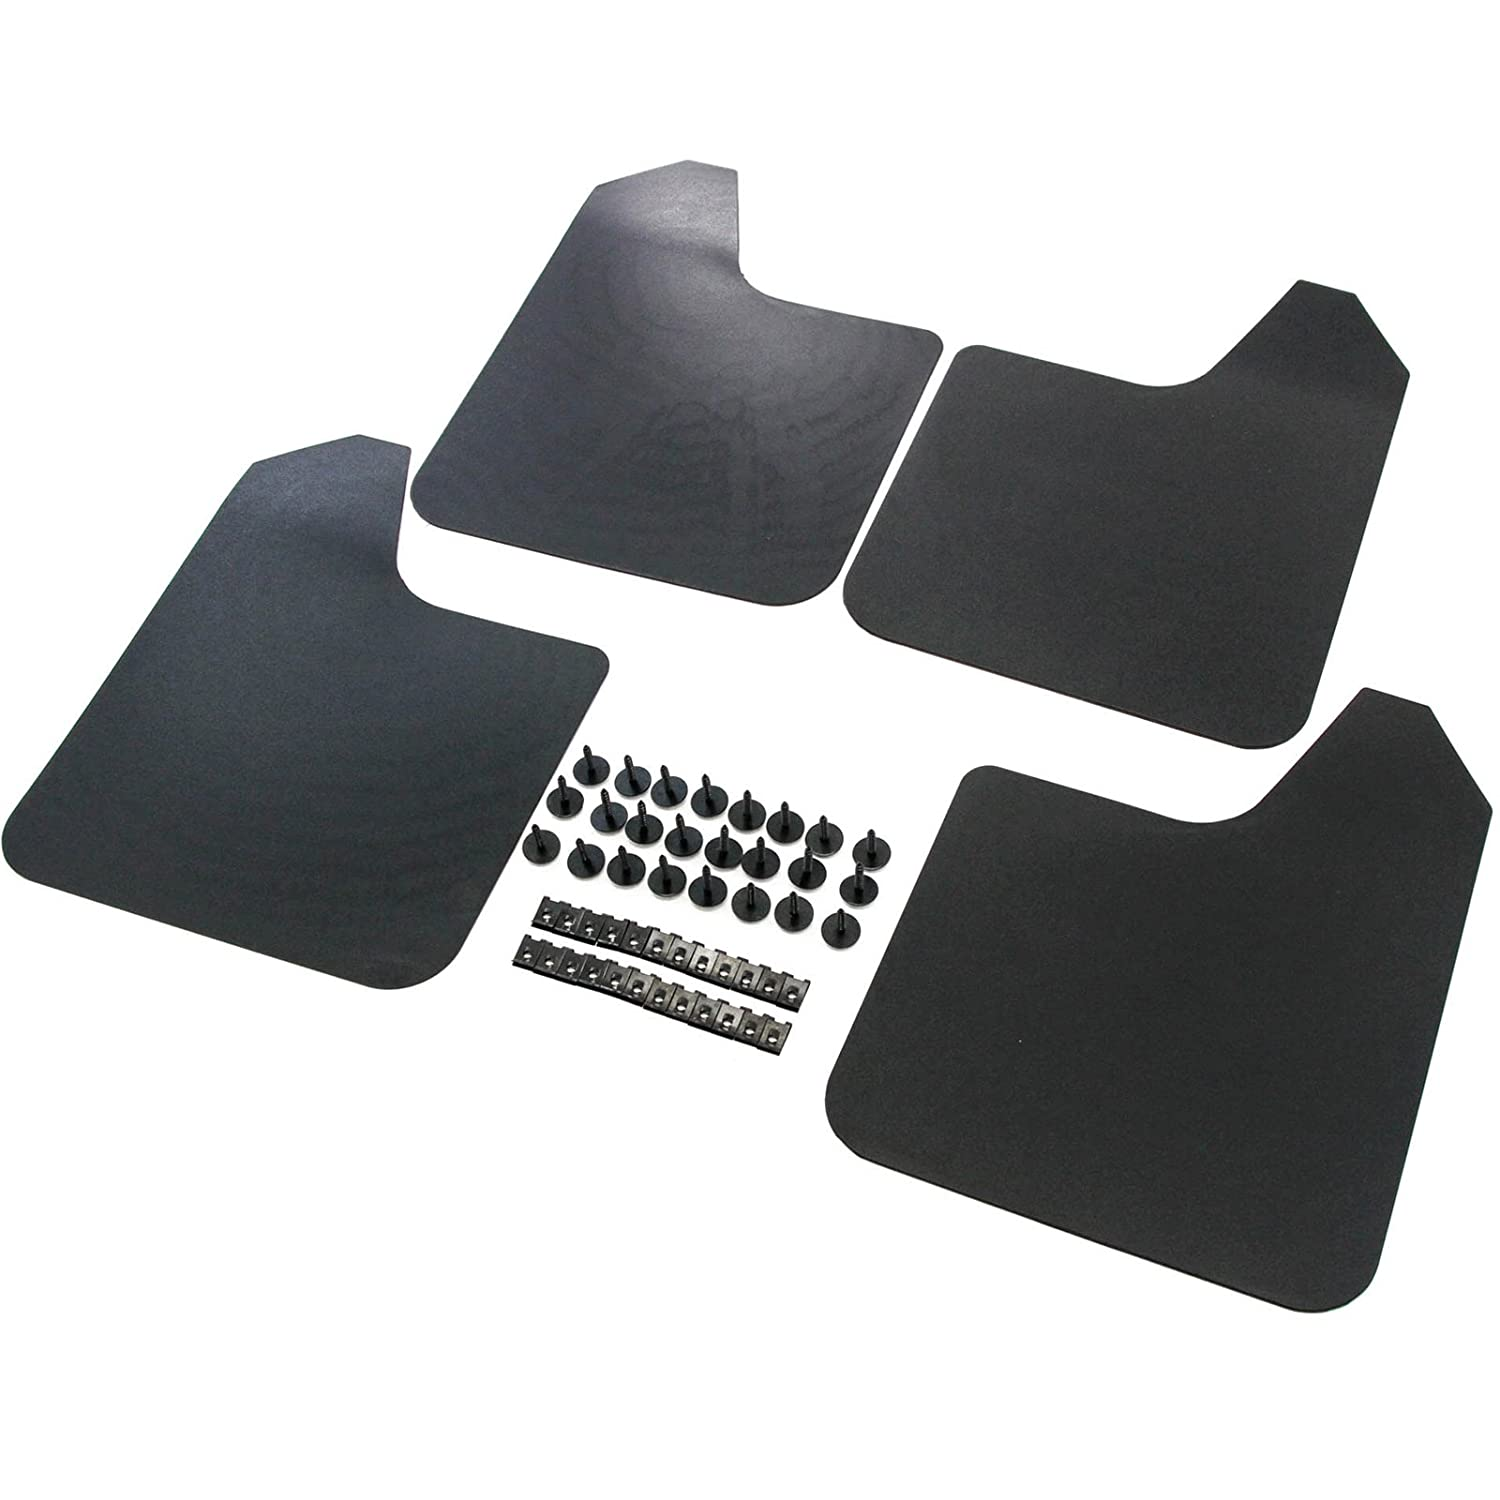 Red Hound Auto Heavy Duty Universal Mud Flaps Guards for Most Vehicles 4 Pc Set Front and Rear